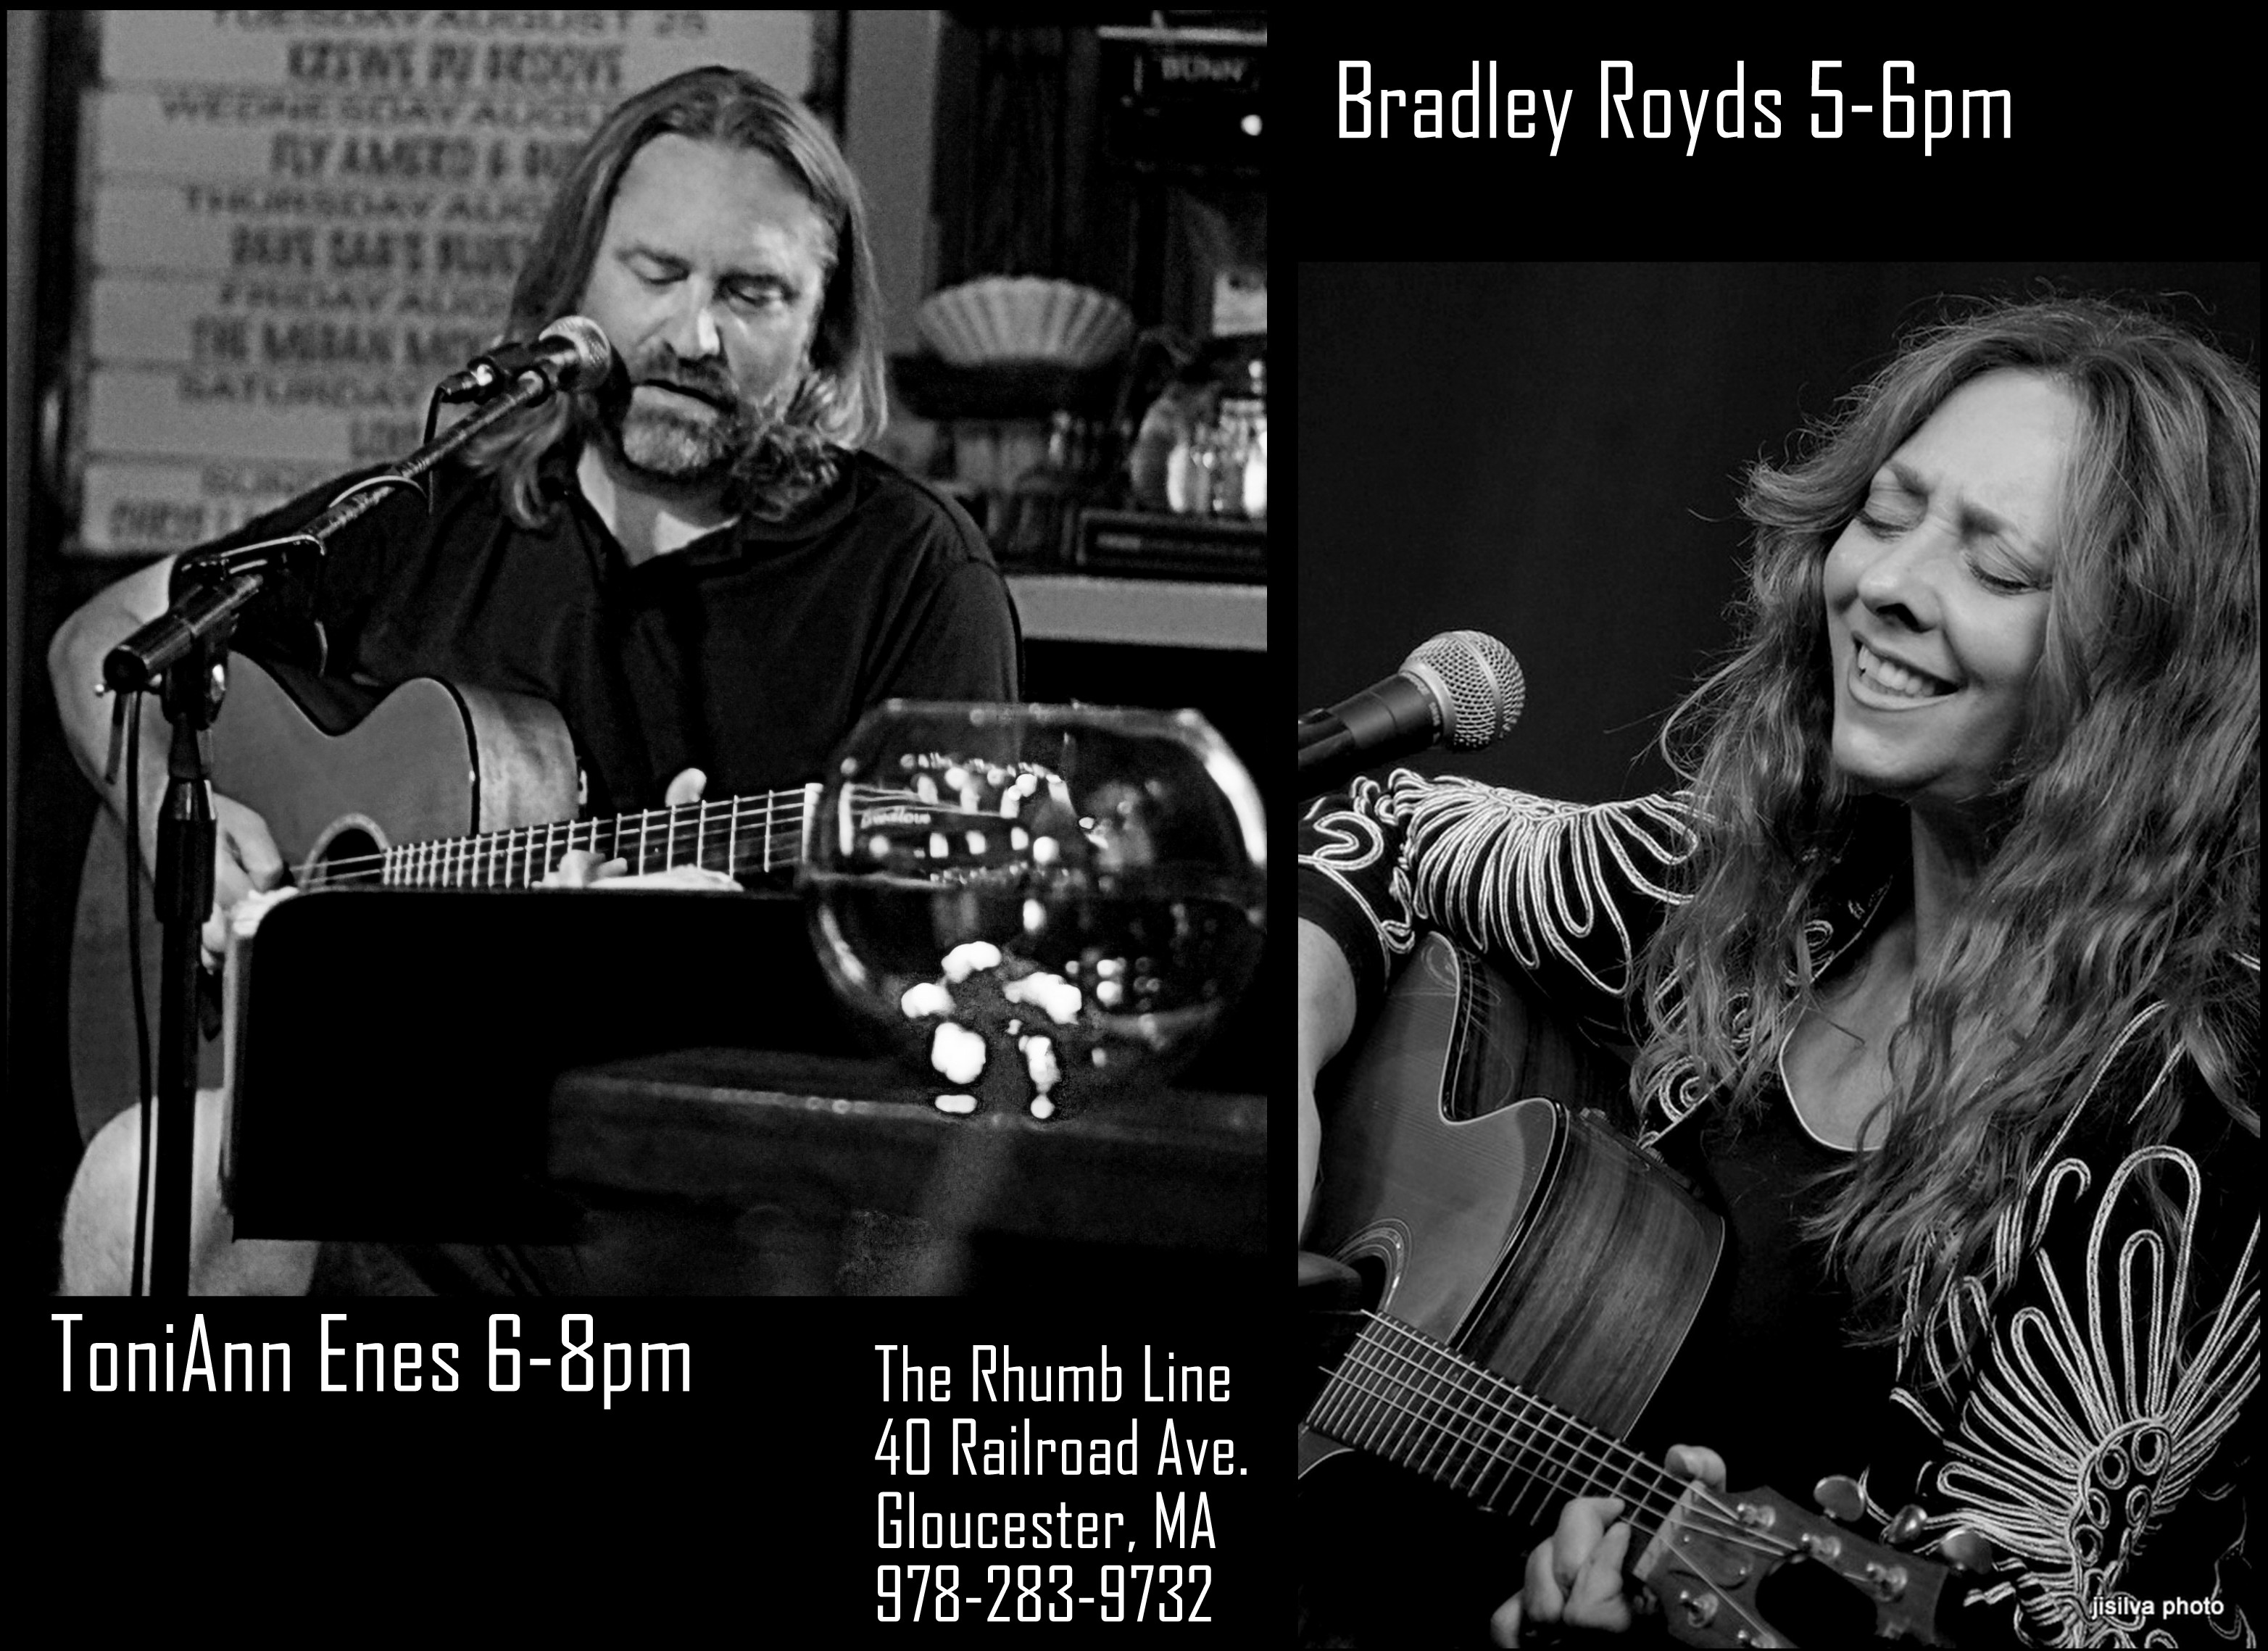 Bradley Royds 5pm and Toni Ann Enes 6pm 8pm Today at The Rhumb Line